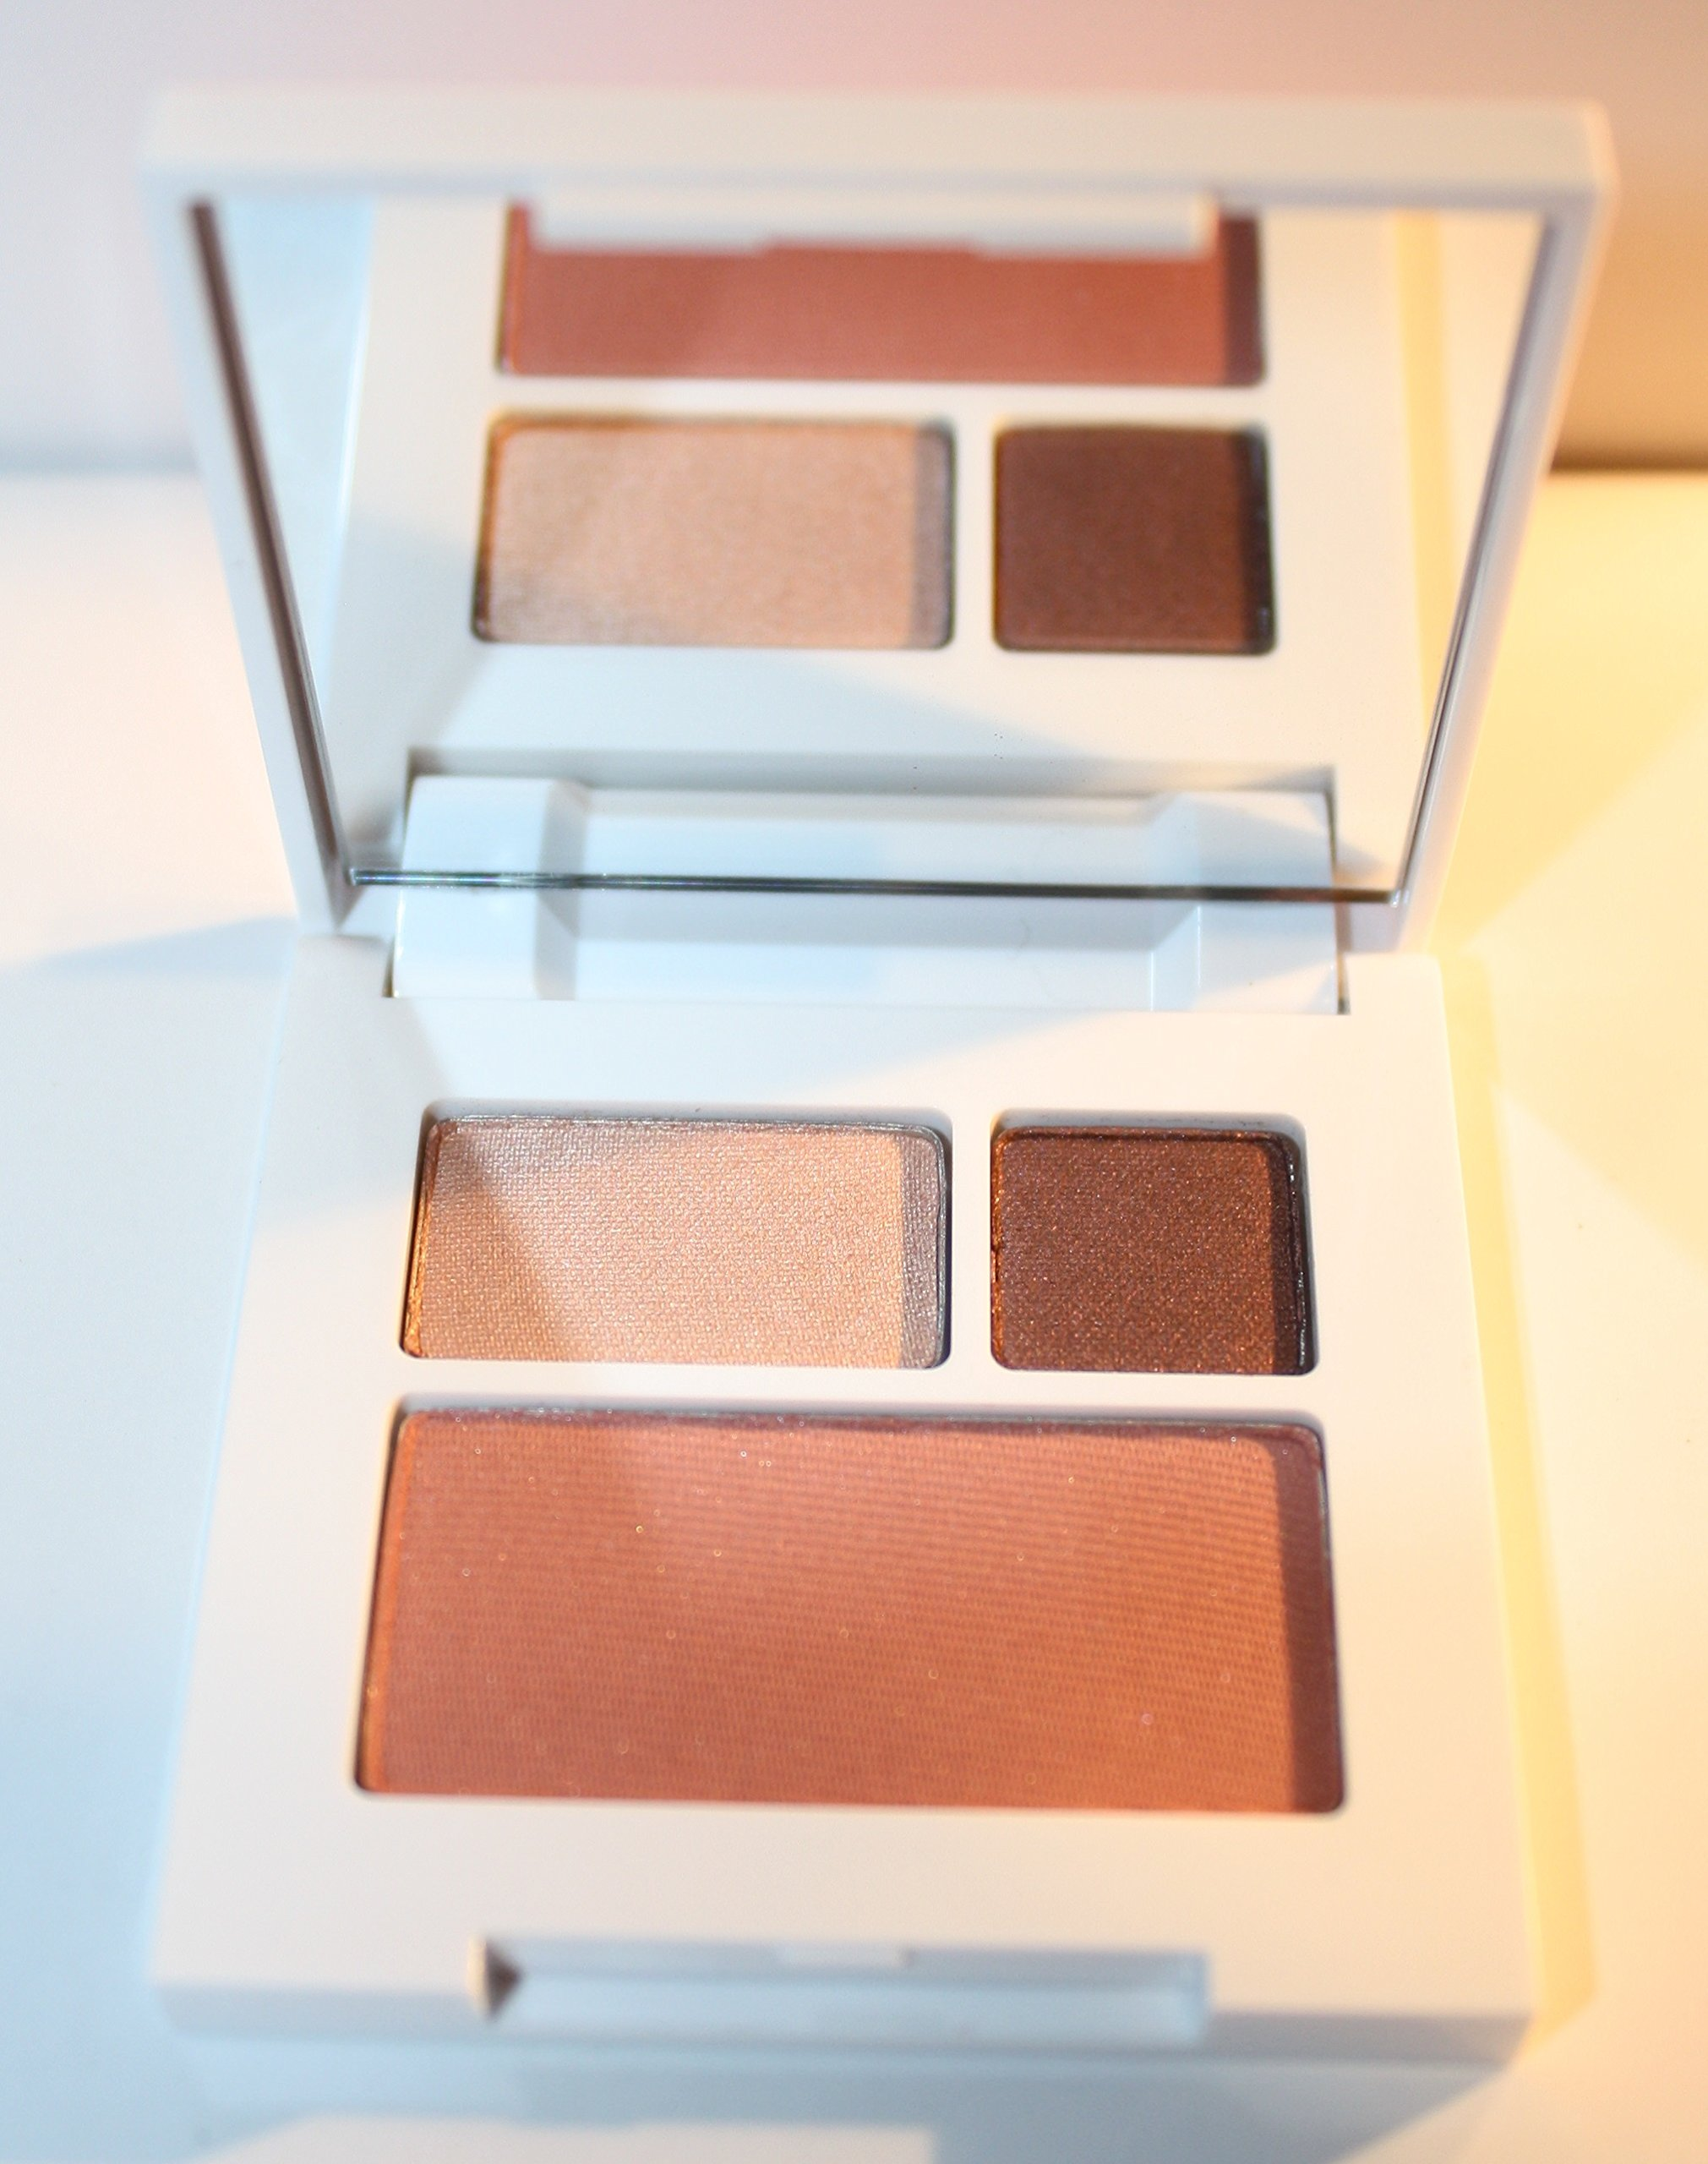 Clinique All About Shadow Duo, 02 Black Honey & 01 Sunset Glow, Soft-pressed Powder Blusher 06 Fig